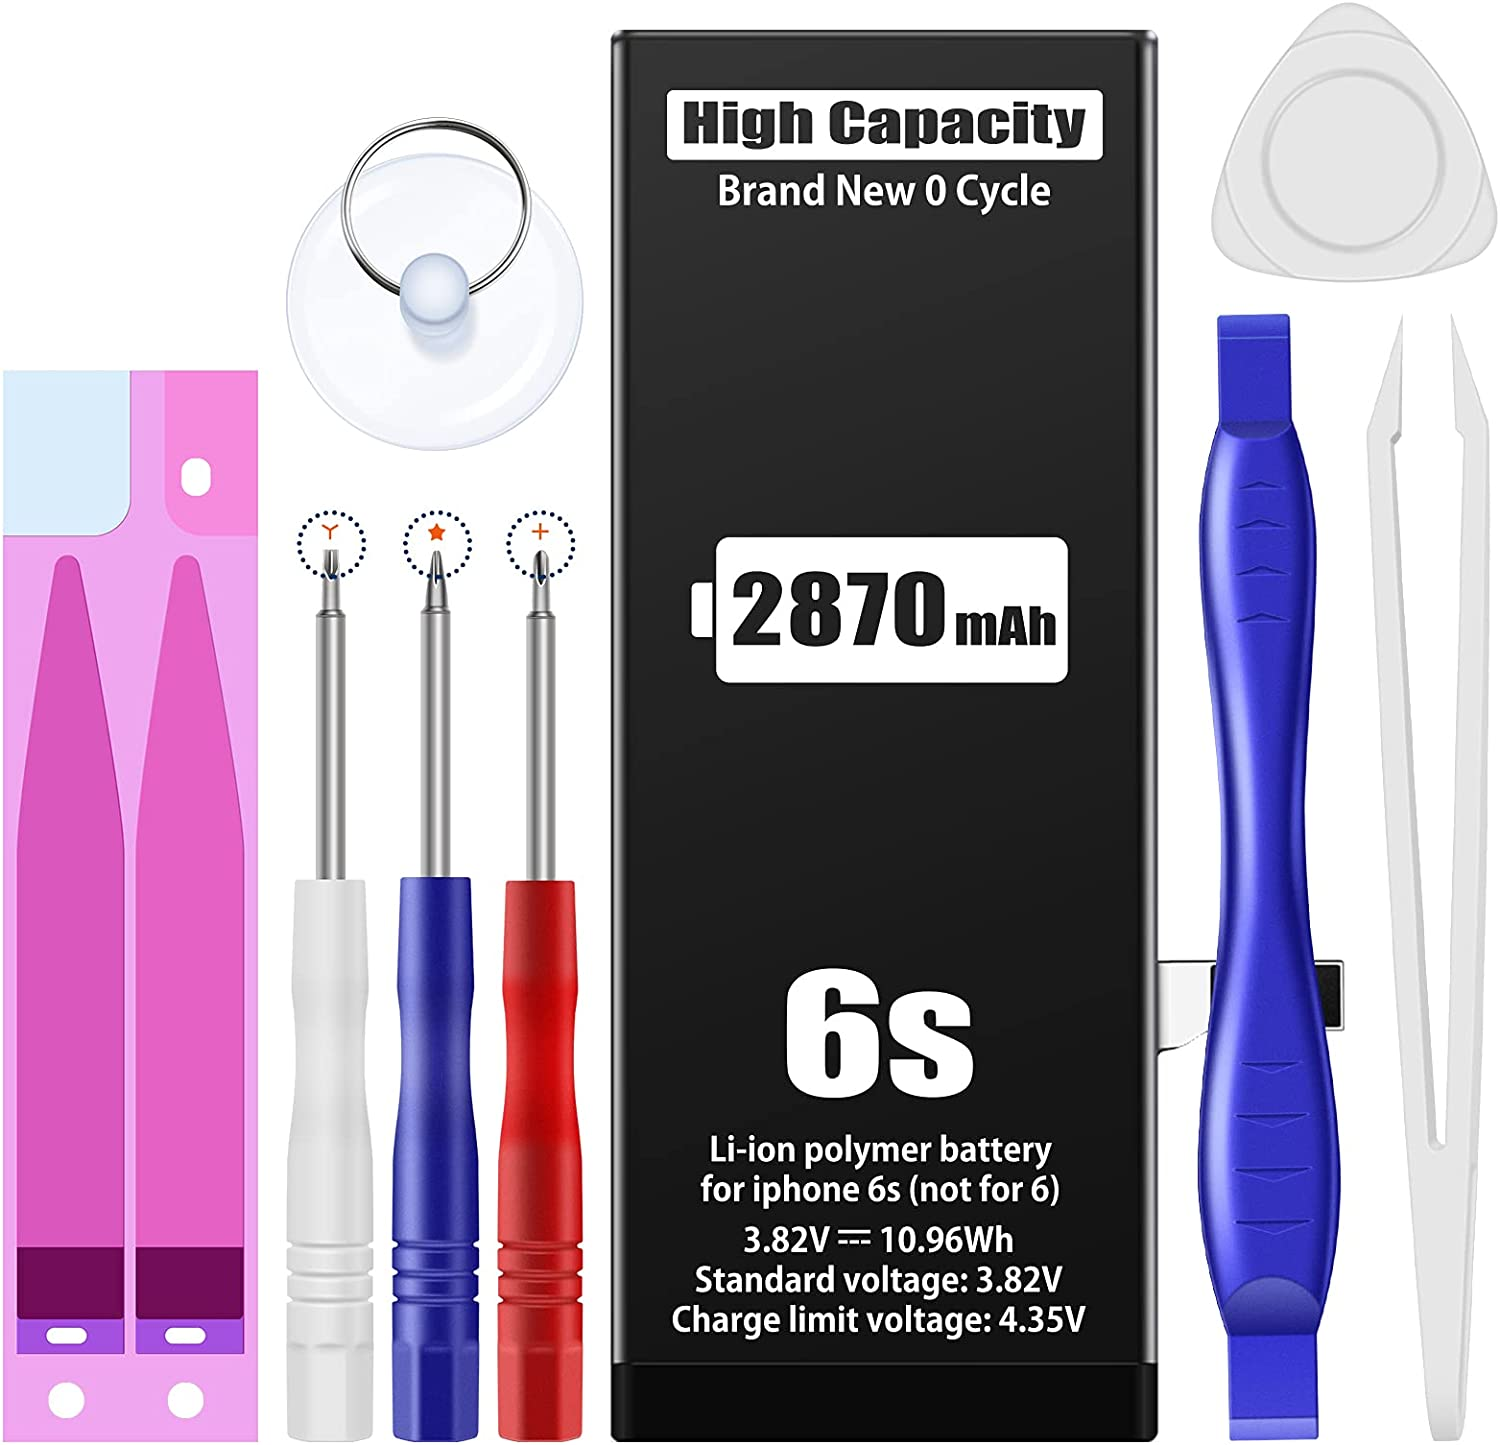 〔2870mAh〕Battery for iPhone 6s, Replacement Battery with High Capacity for iPhone 6s with Full Remove Tool Kit